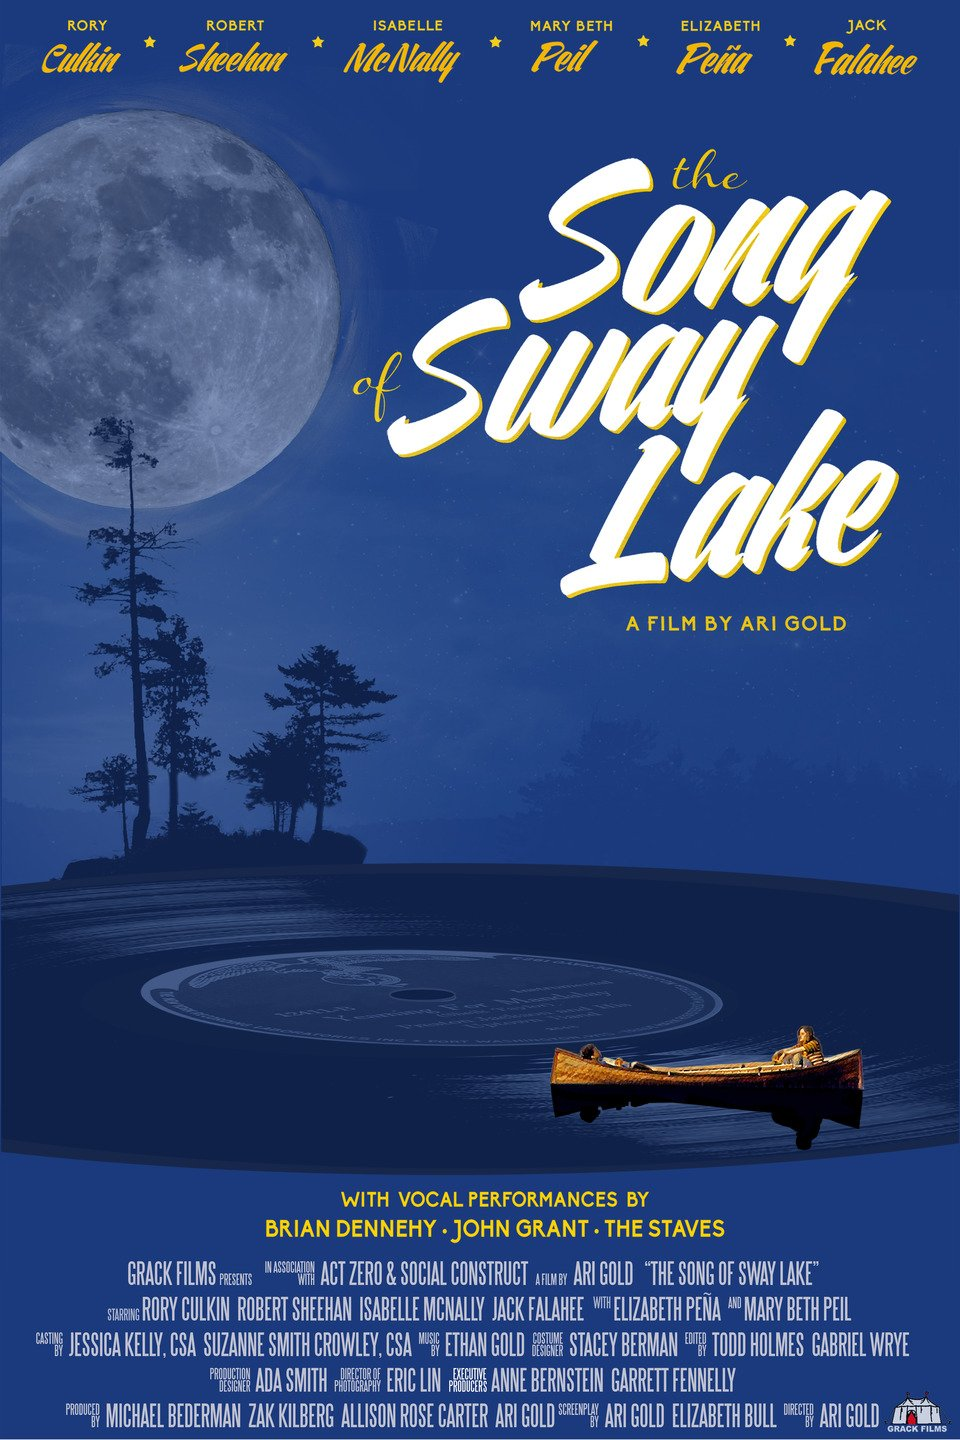 THE SONG OF SWAY LAKE - Directed by Ari Gold - USA / 2017 / 101 minutes